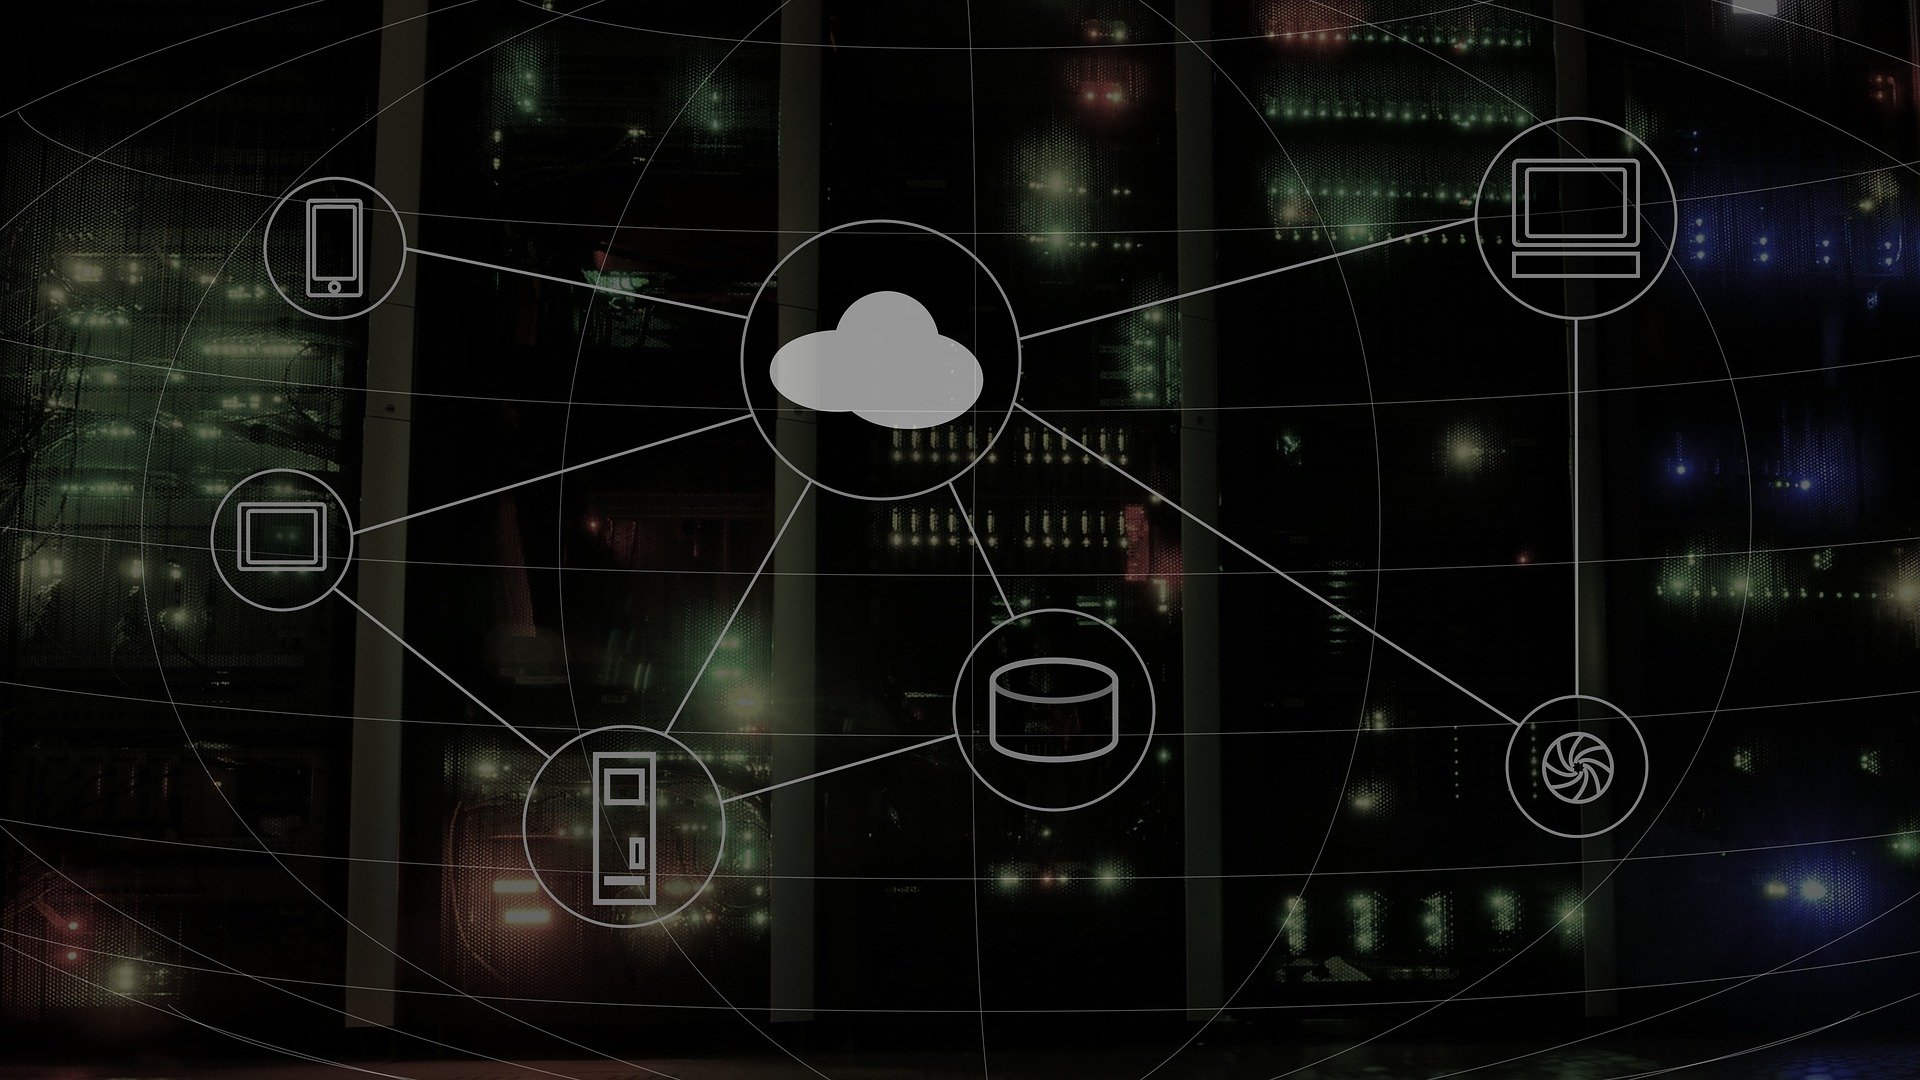 Cloud computing in 2020 IT Support Melbourne Business IT Support Melbourne IT Support Company Melbourne